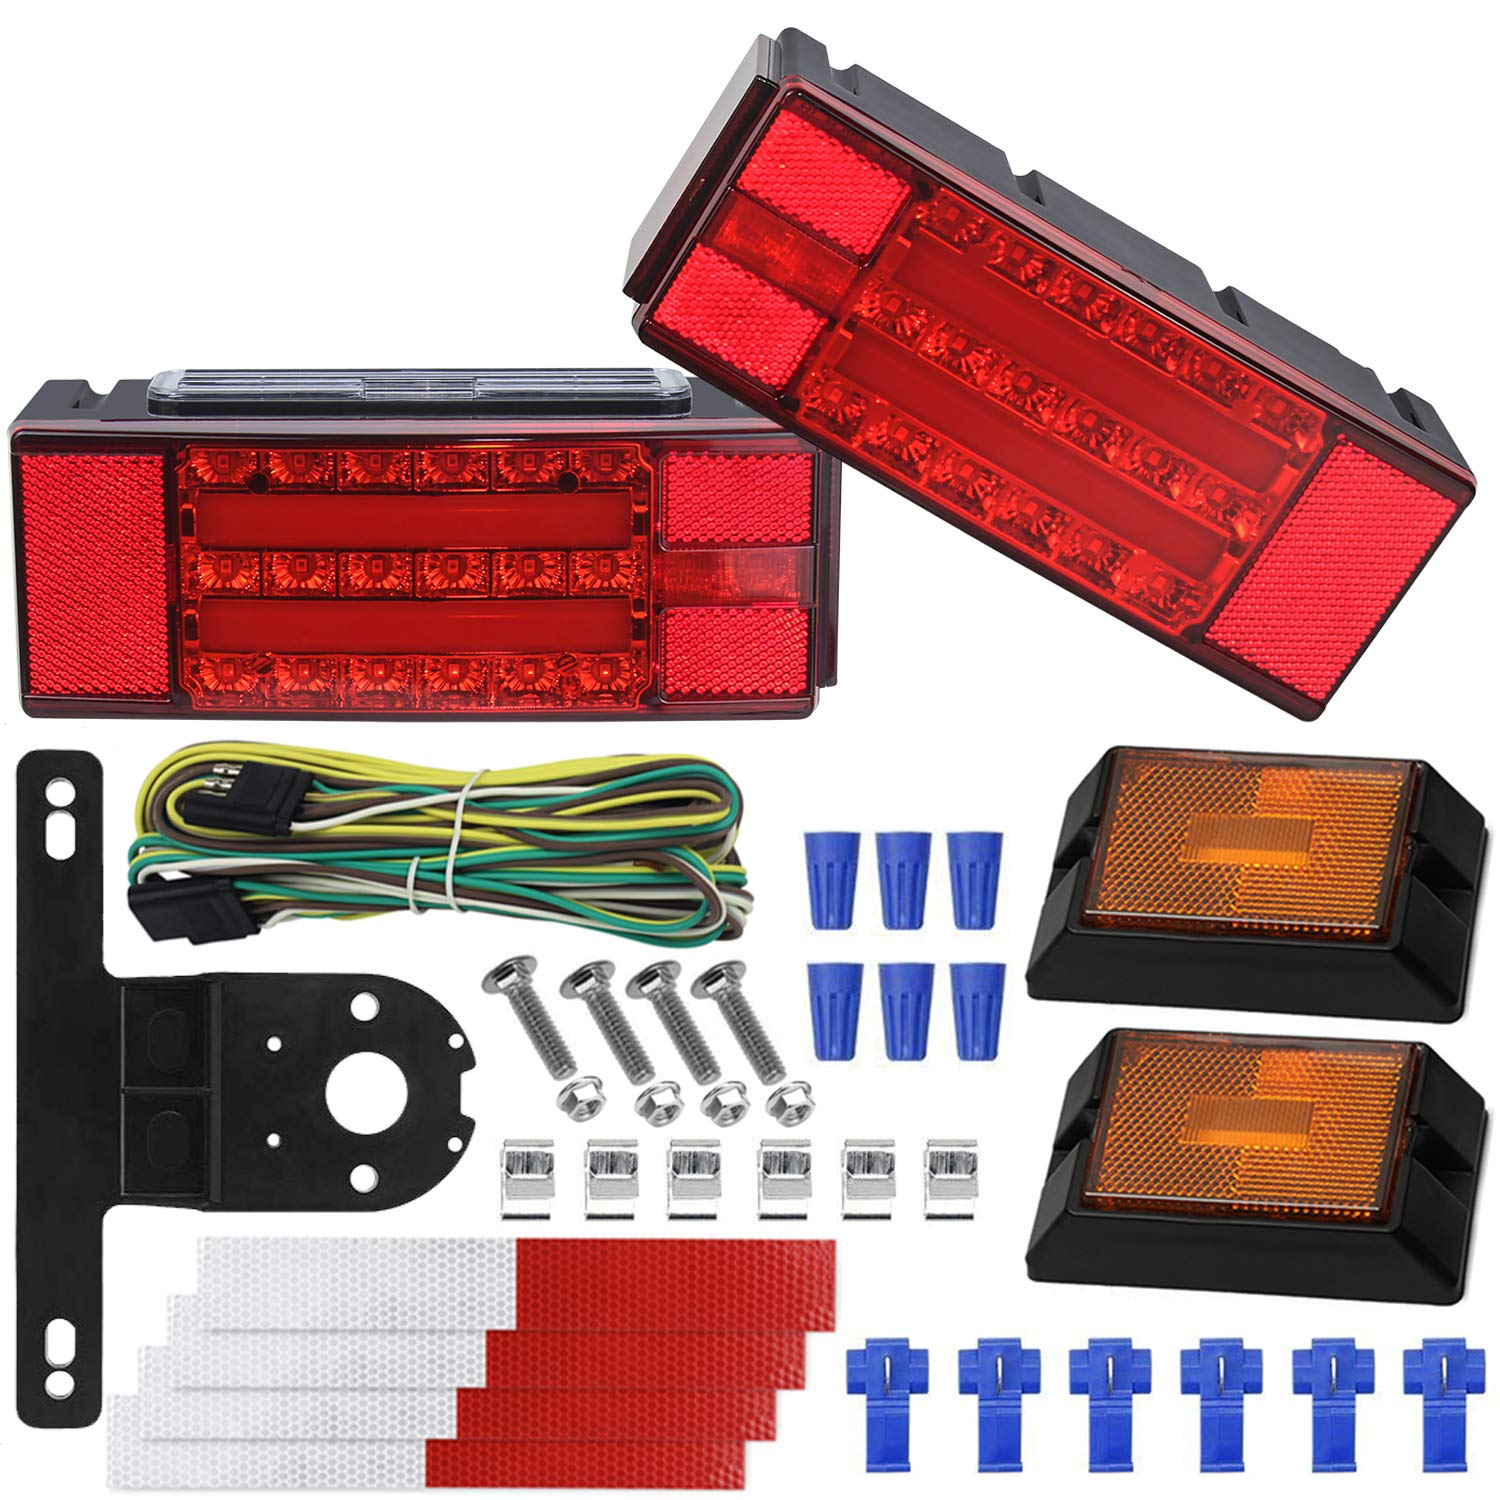 WoneNice LED Low Profile Submersible Trailer Tail Light Kit, rectangle LED Trailer Lights Halo Glow with Wiring Harness Combined Stop, Tail Lights, Turn Function for Boat Trailer, 12V by WoneNice